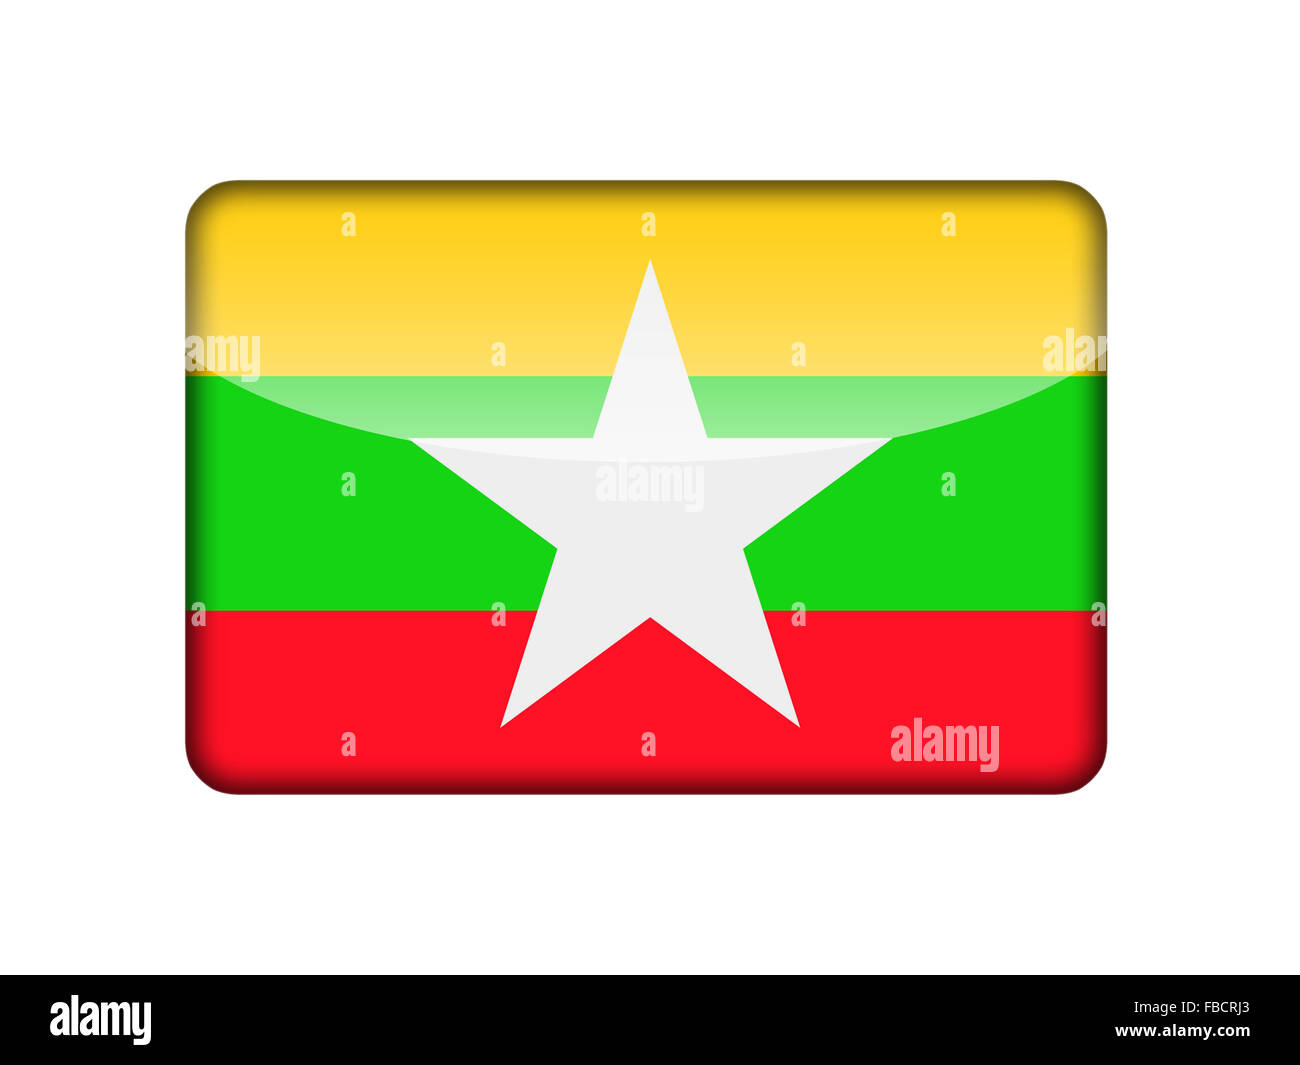 The Myanmar flag - Stock Image